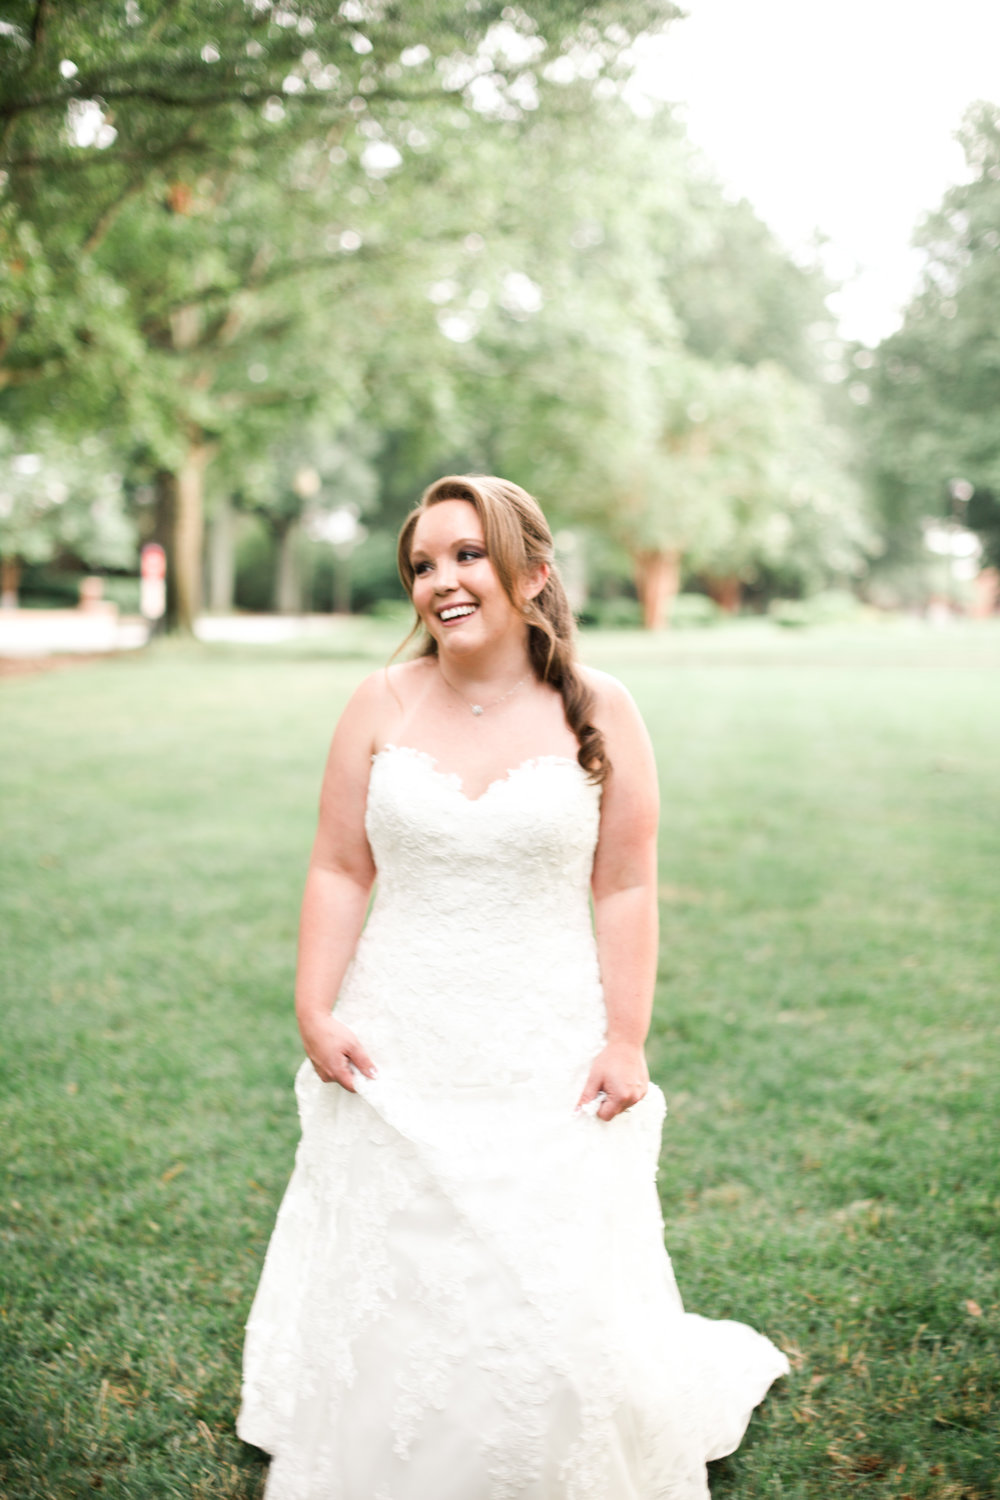 gabbie_bridal_poured_out_photography-36.jpg